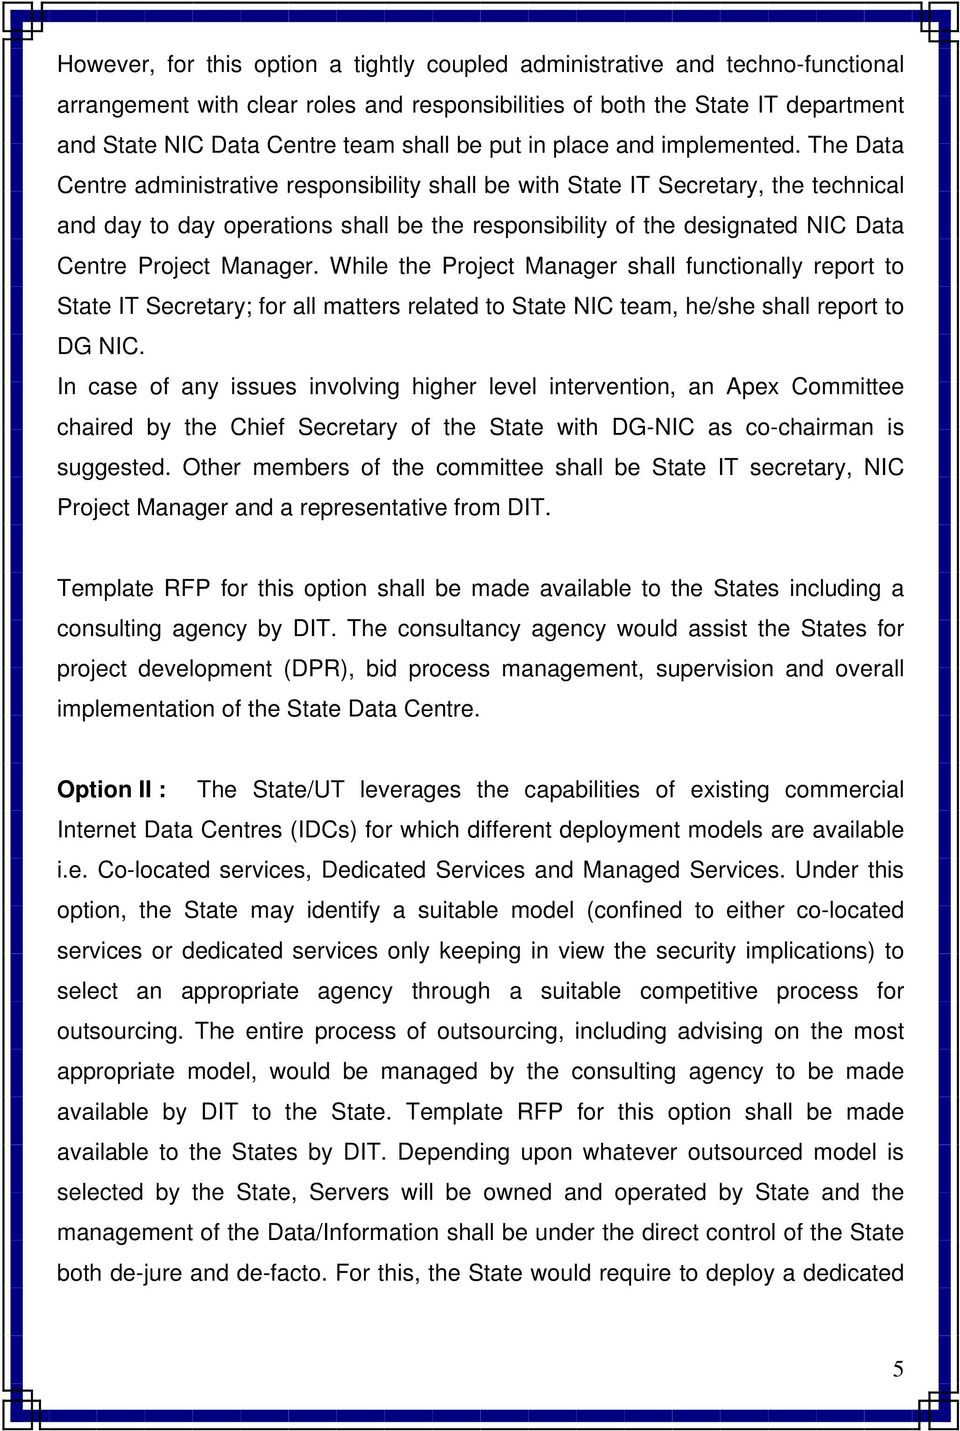 The Data Centre administrative responsibility shall be with State IT Secretary, the technical and day to day operations shall be the responsibility of the designated NIC Data Centre Project Manager.